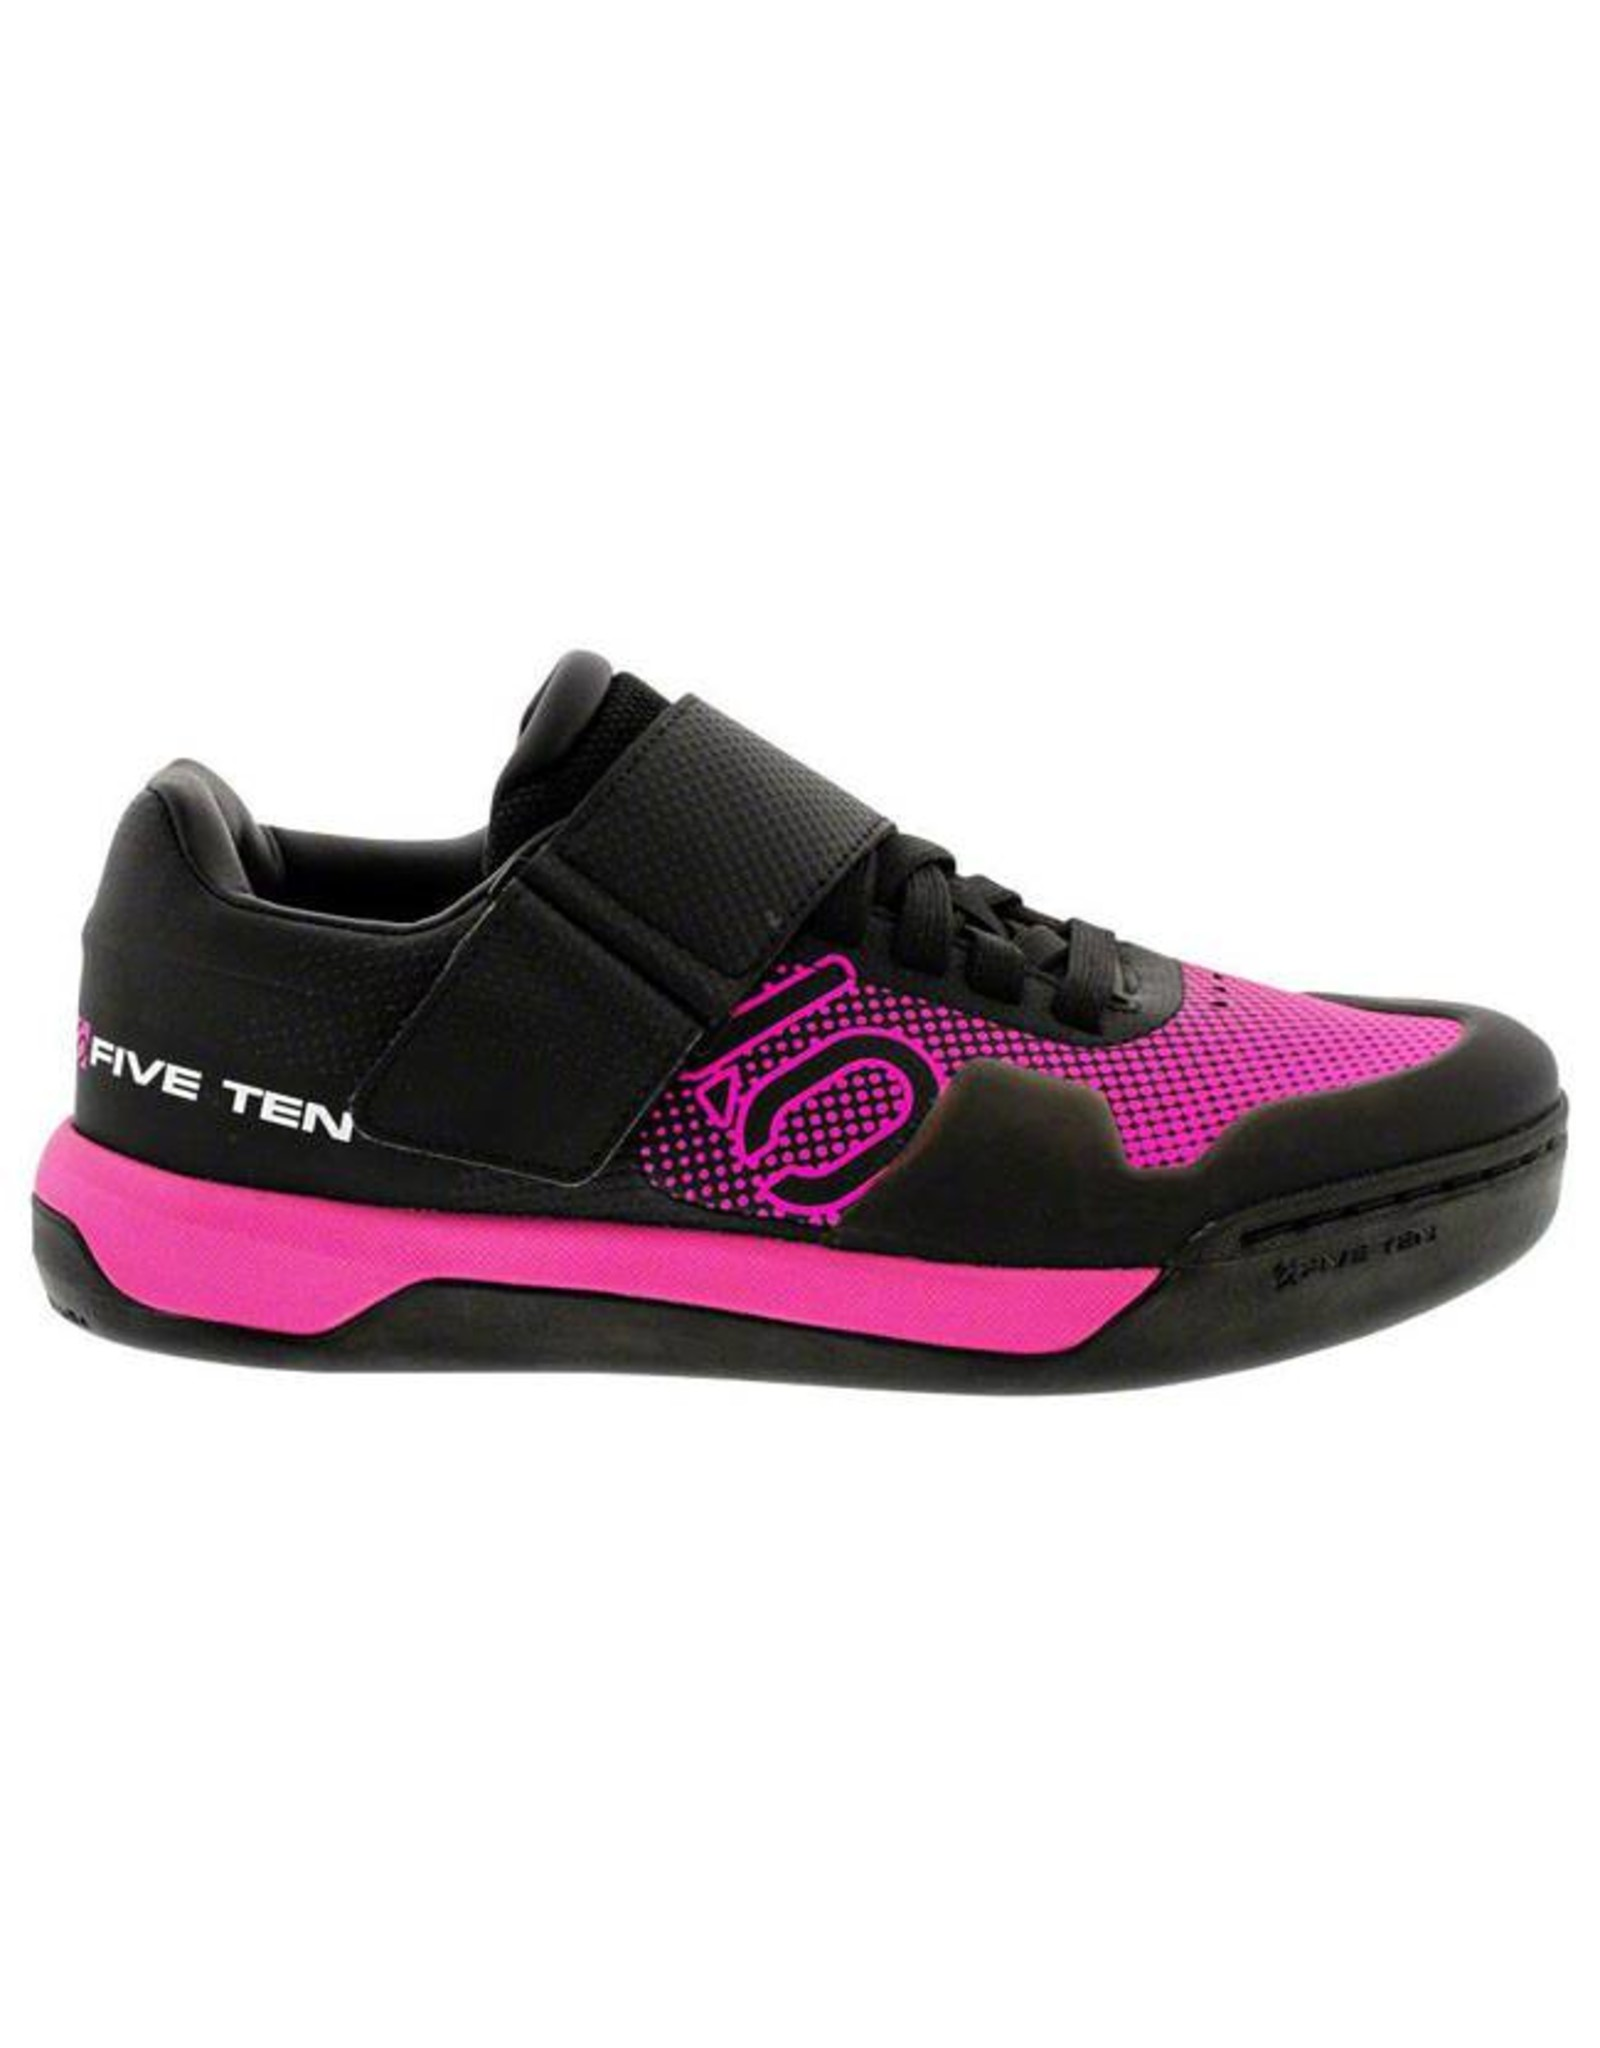 Five Ten Five Ten Hellcat Pro Women's Clipless/Flat Pedal Shoe: Shock Pink 8